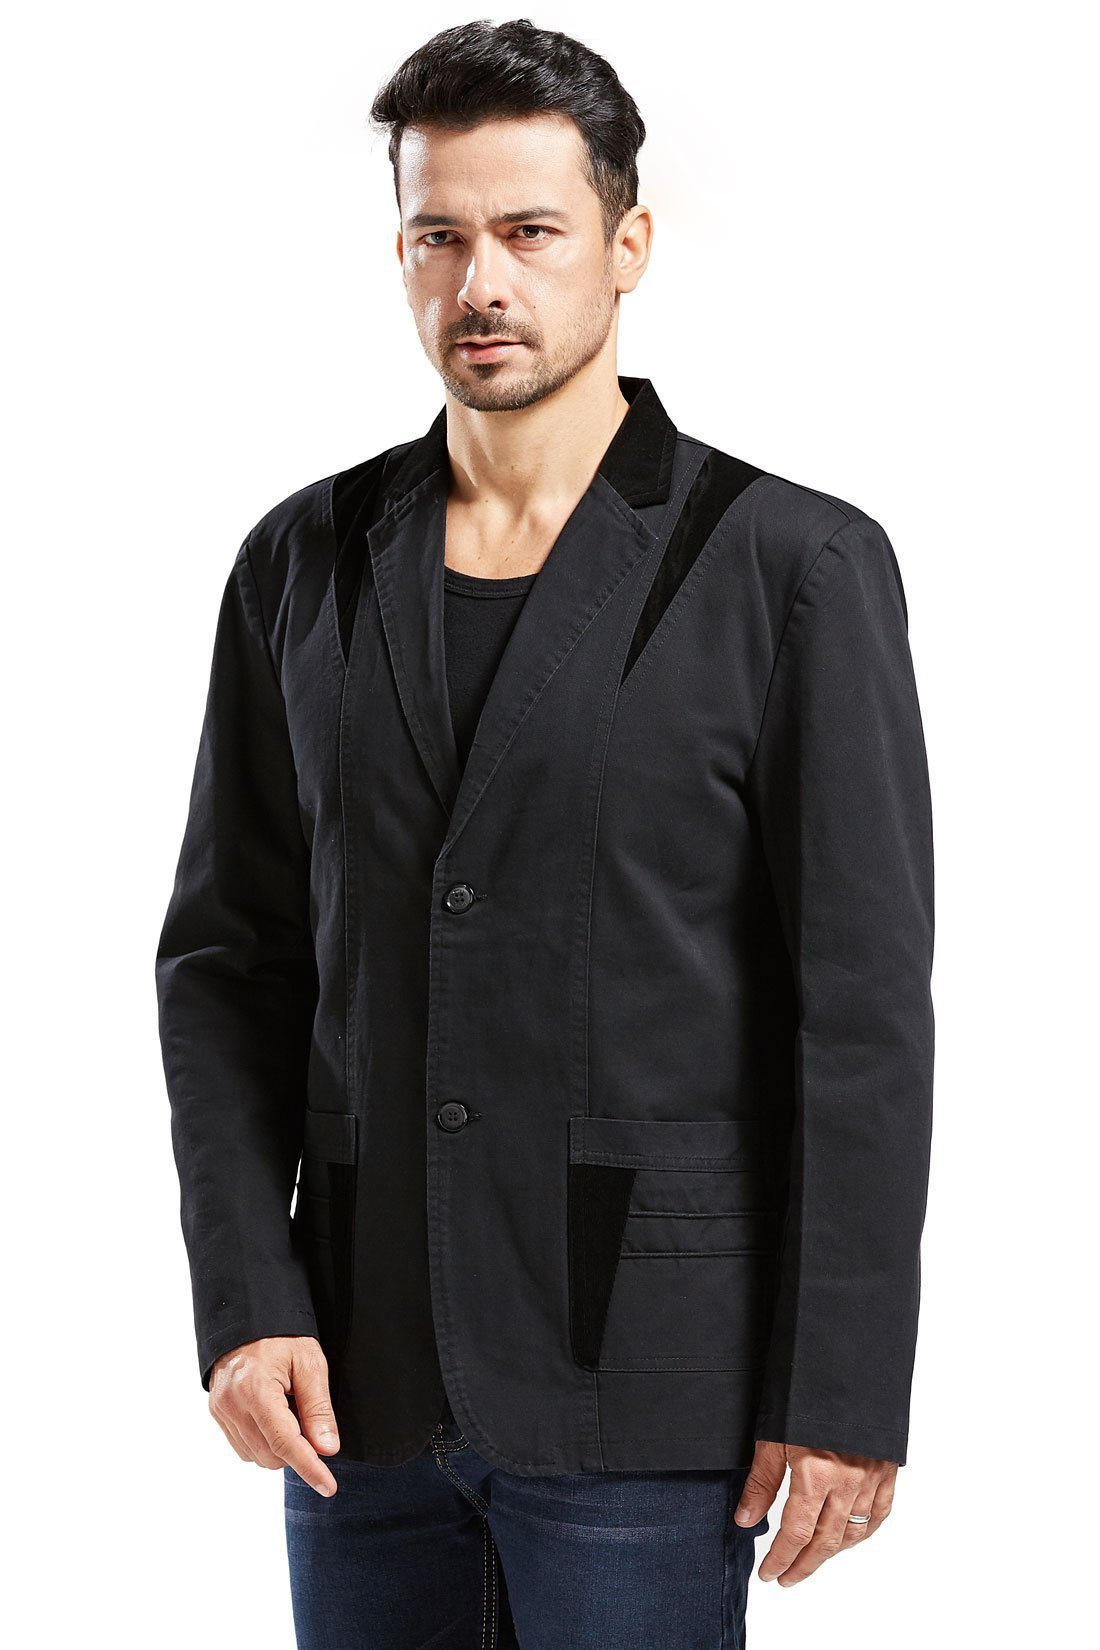 Chartou Men's Casual Western-Style Lightweight Slim Two-Buttons Cotton Suit Blazers Jacket (Medium, Black)